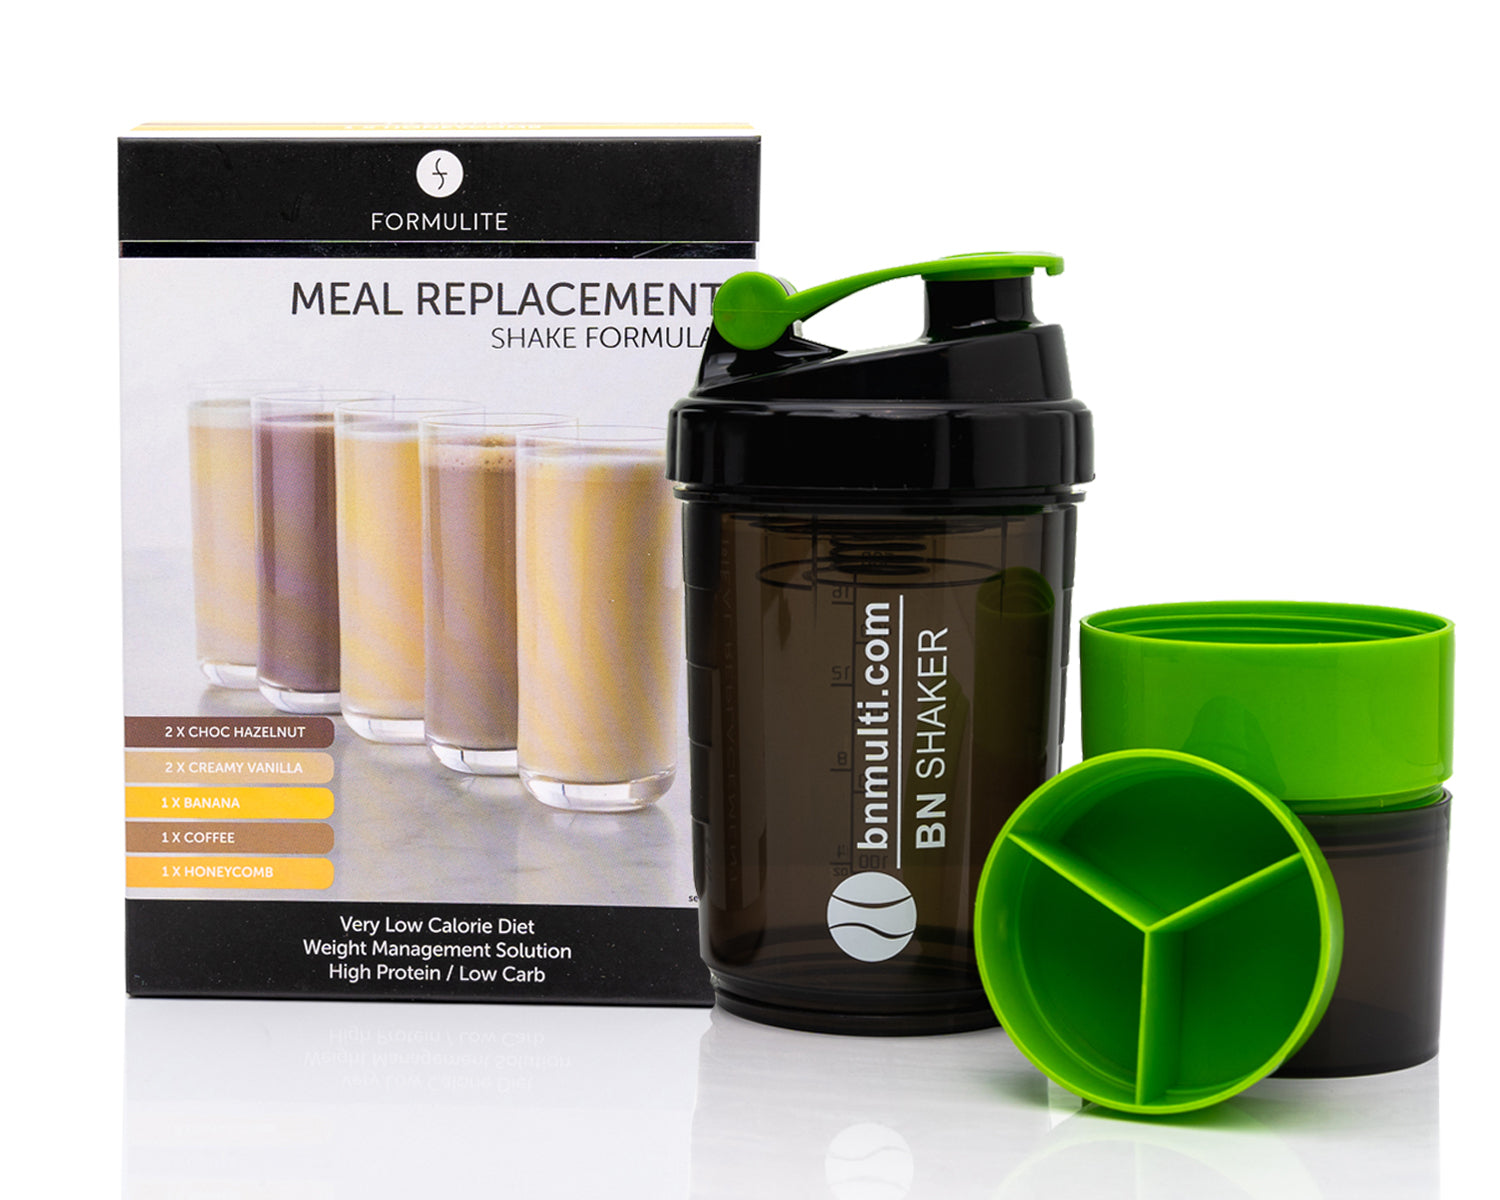 Formulite Meal Replacement